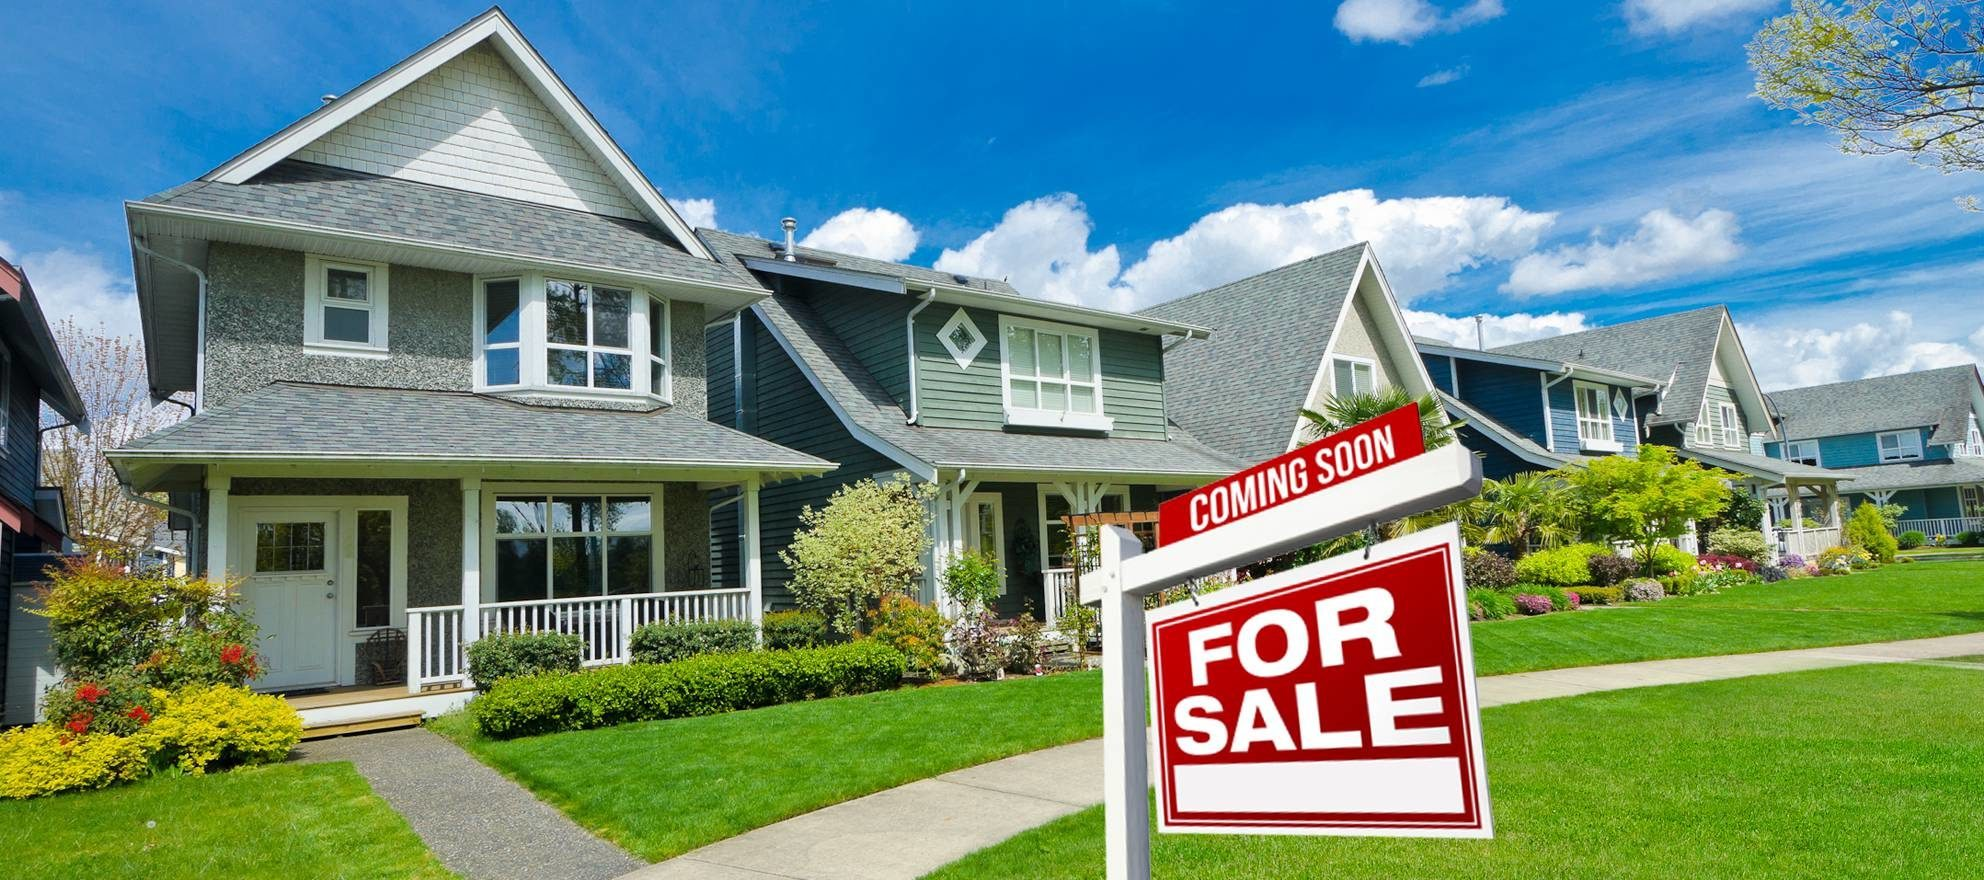 Sugar Land home prices rose in August across the board